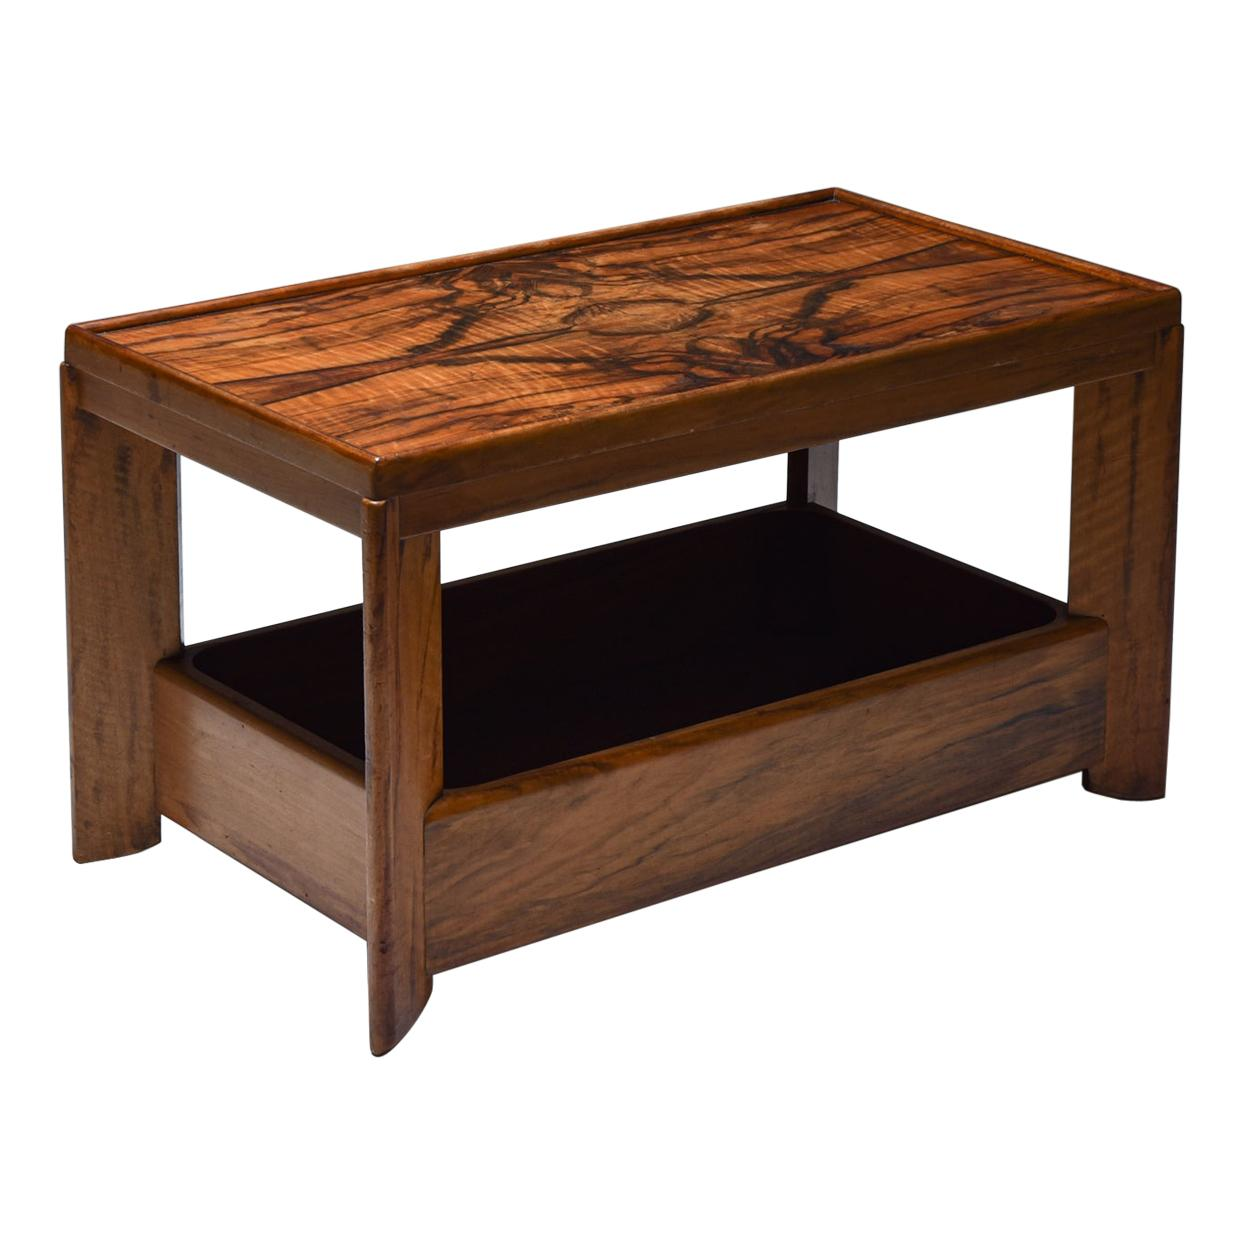 Art Deco Modernist Two Tier Coffee Table by H. Wouda